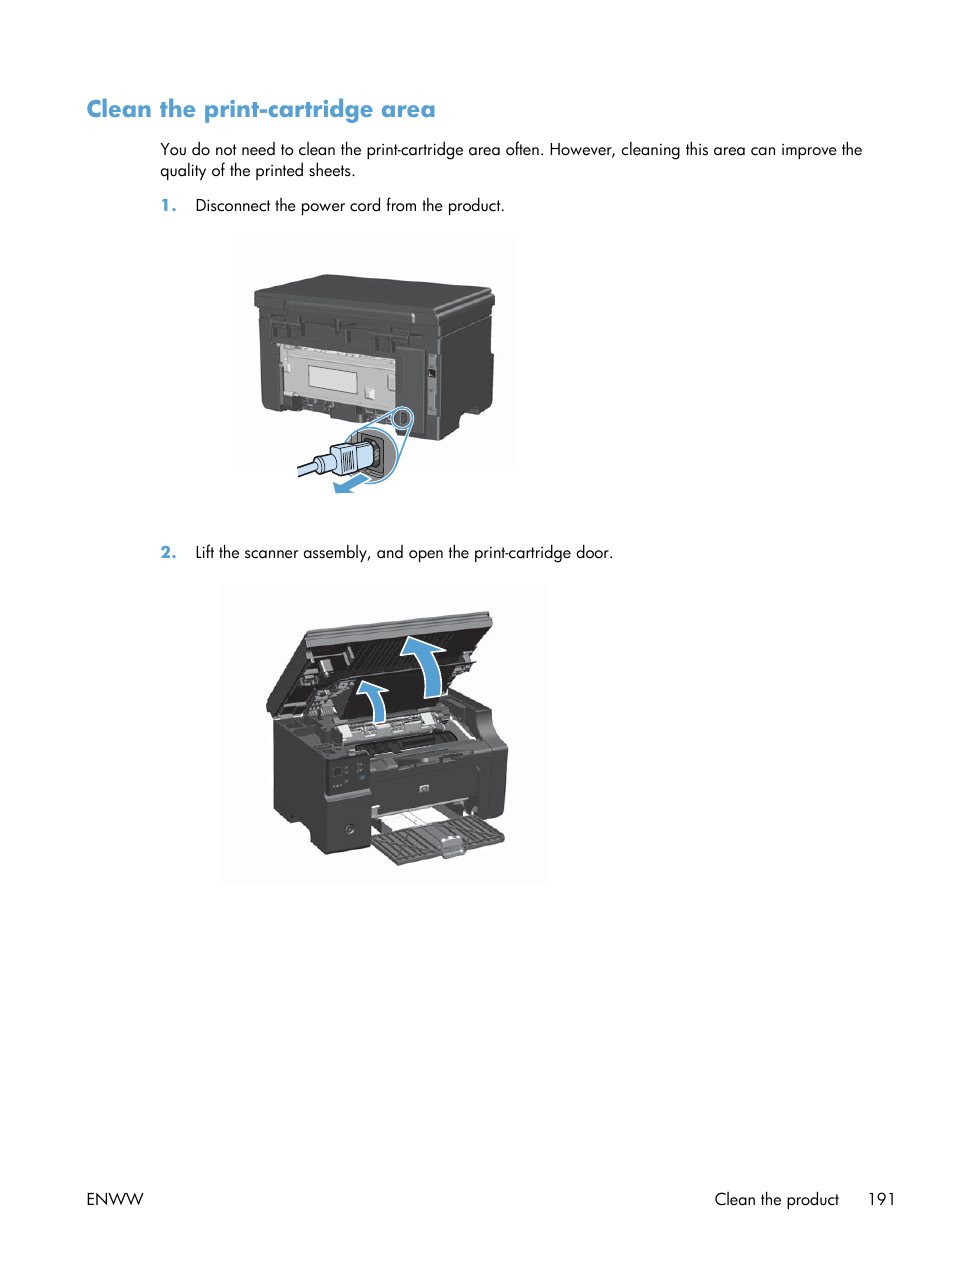 Clean the print-cartridge area   HP laserjet m1212nf User Manual   Page 205  / 284